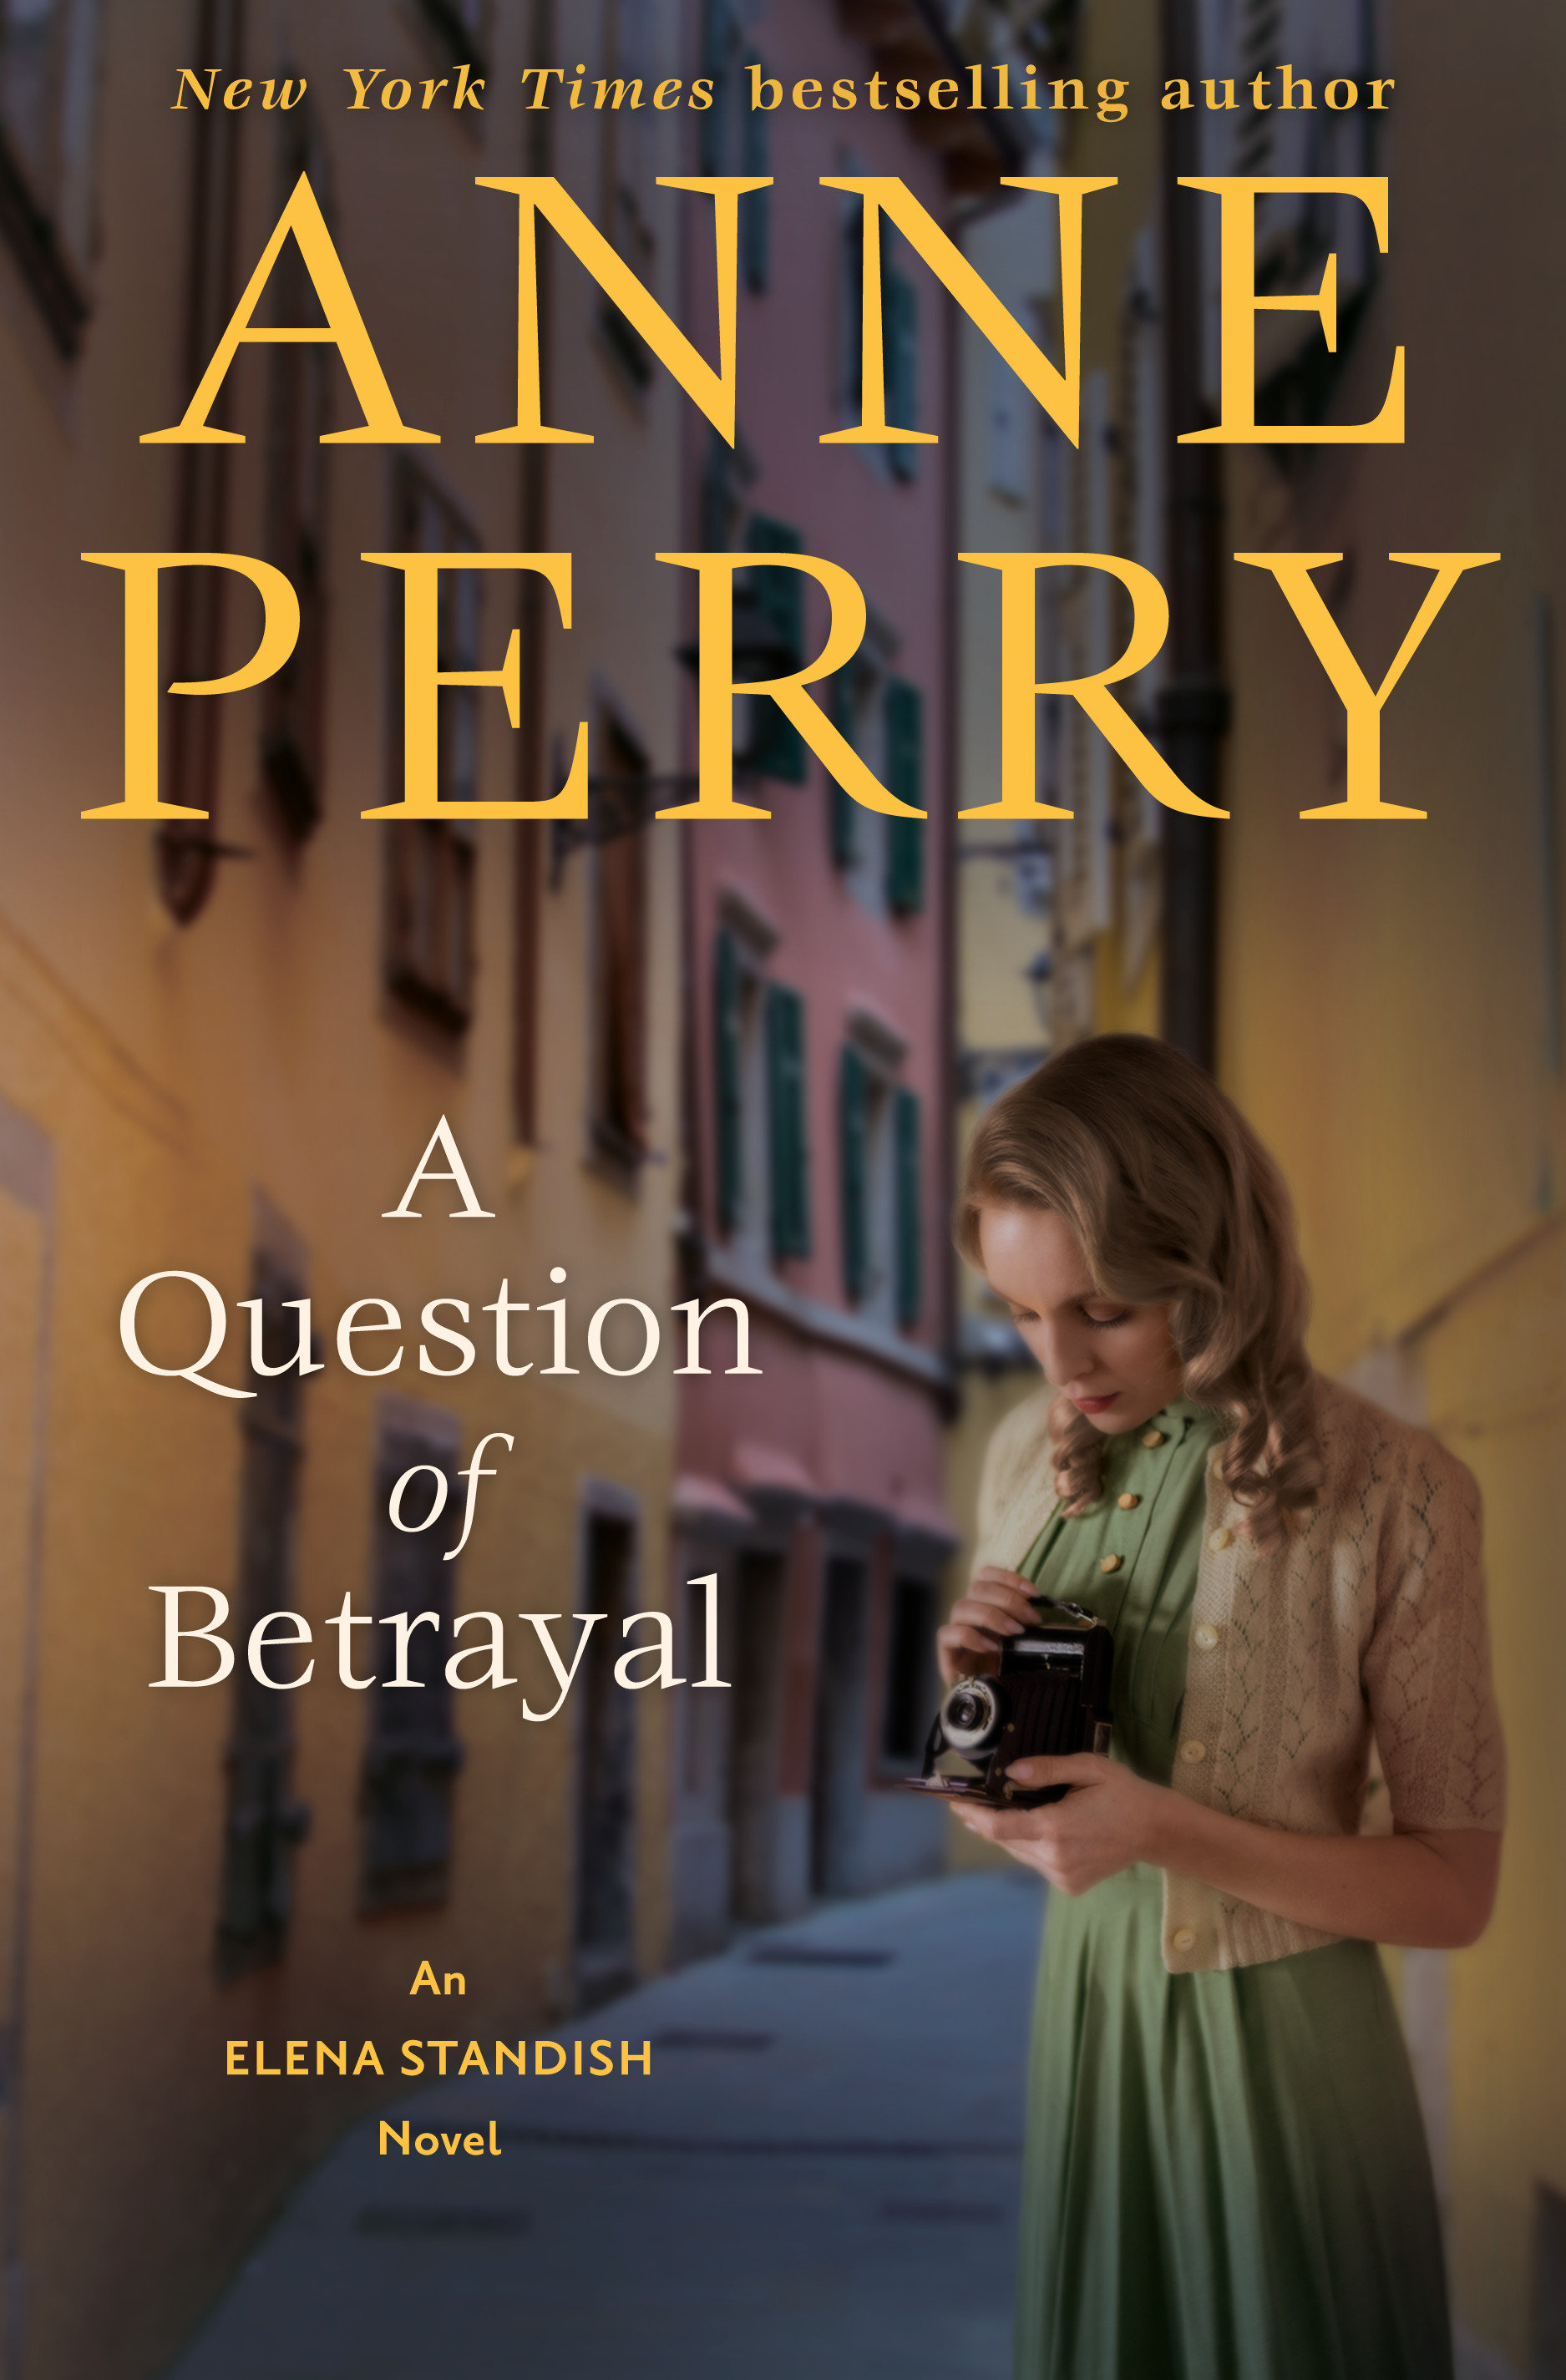 A Question of Betrayal An Elena Standish Novel